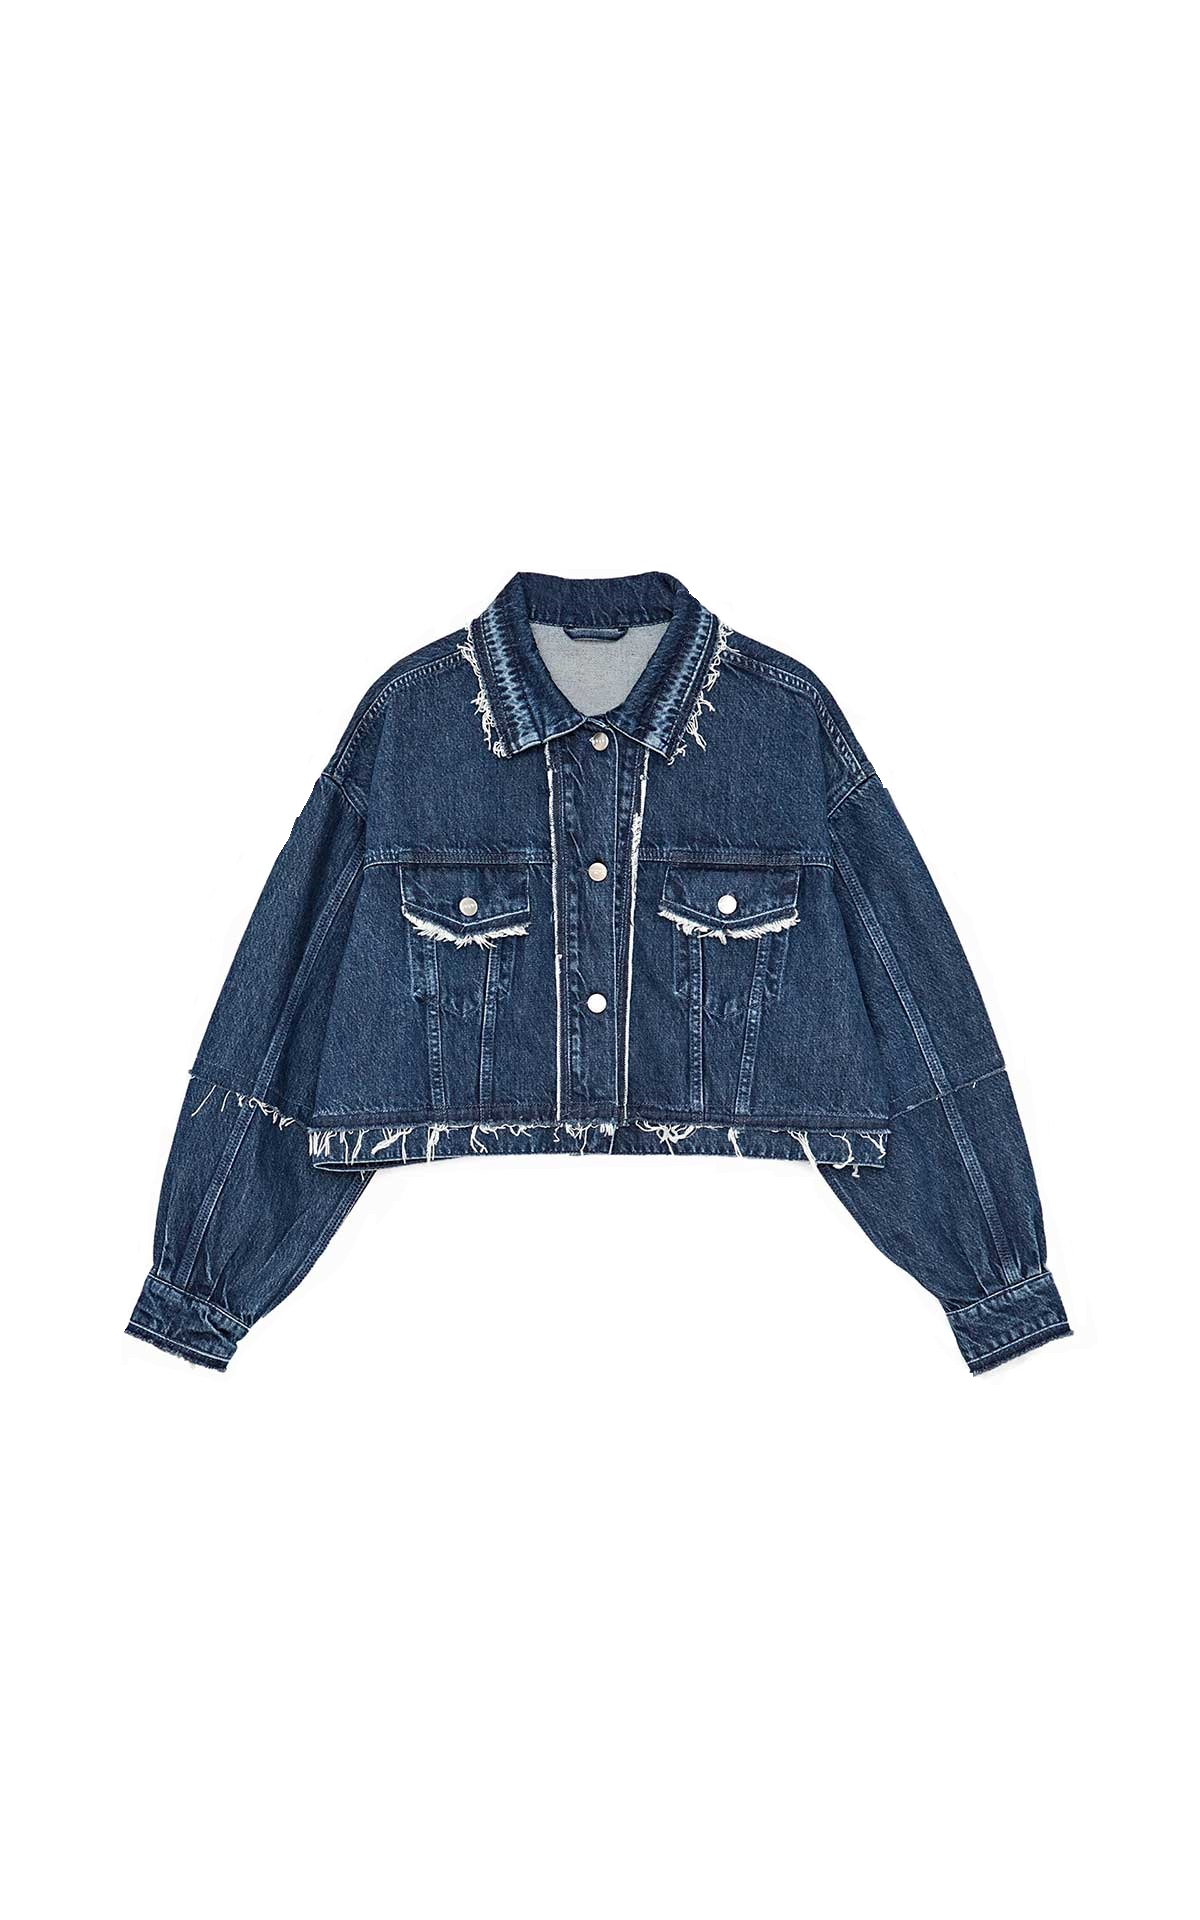 Short denim jacket Dua Lipa x Pepe Jeans